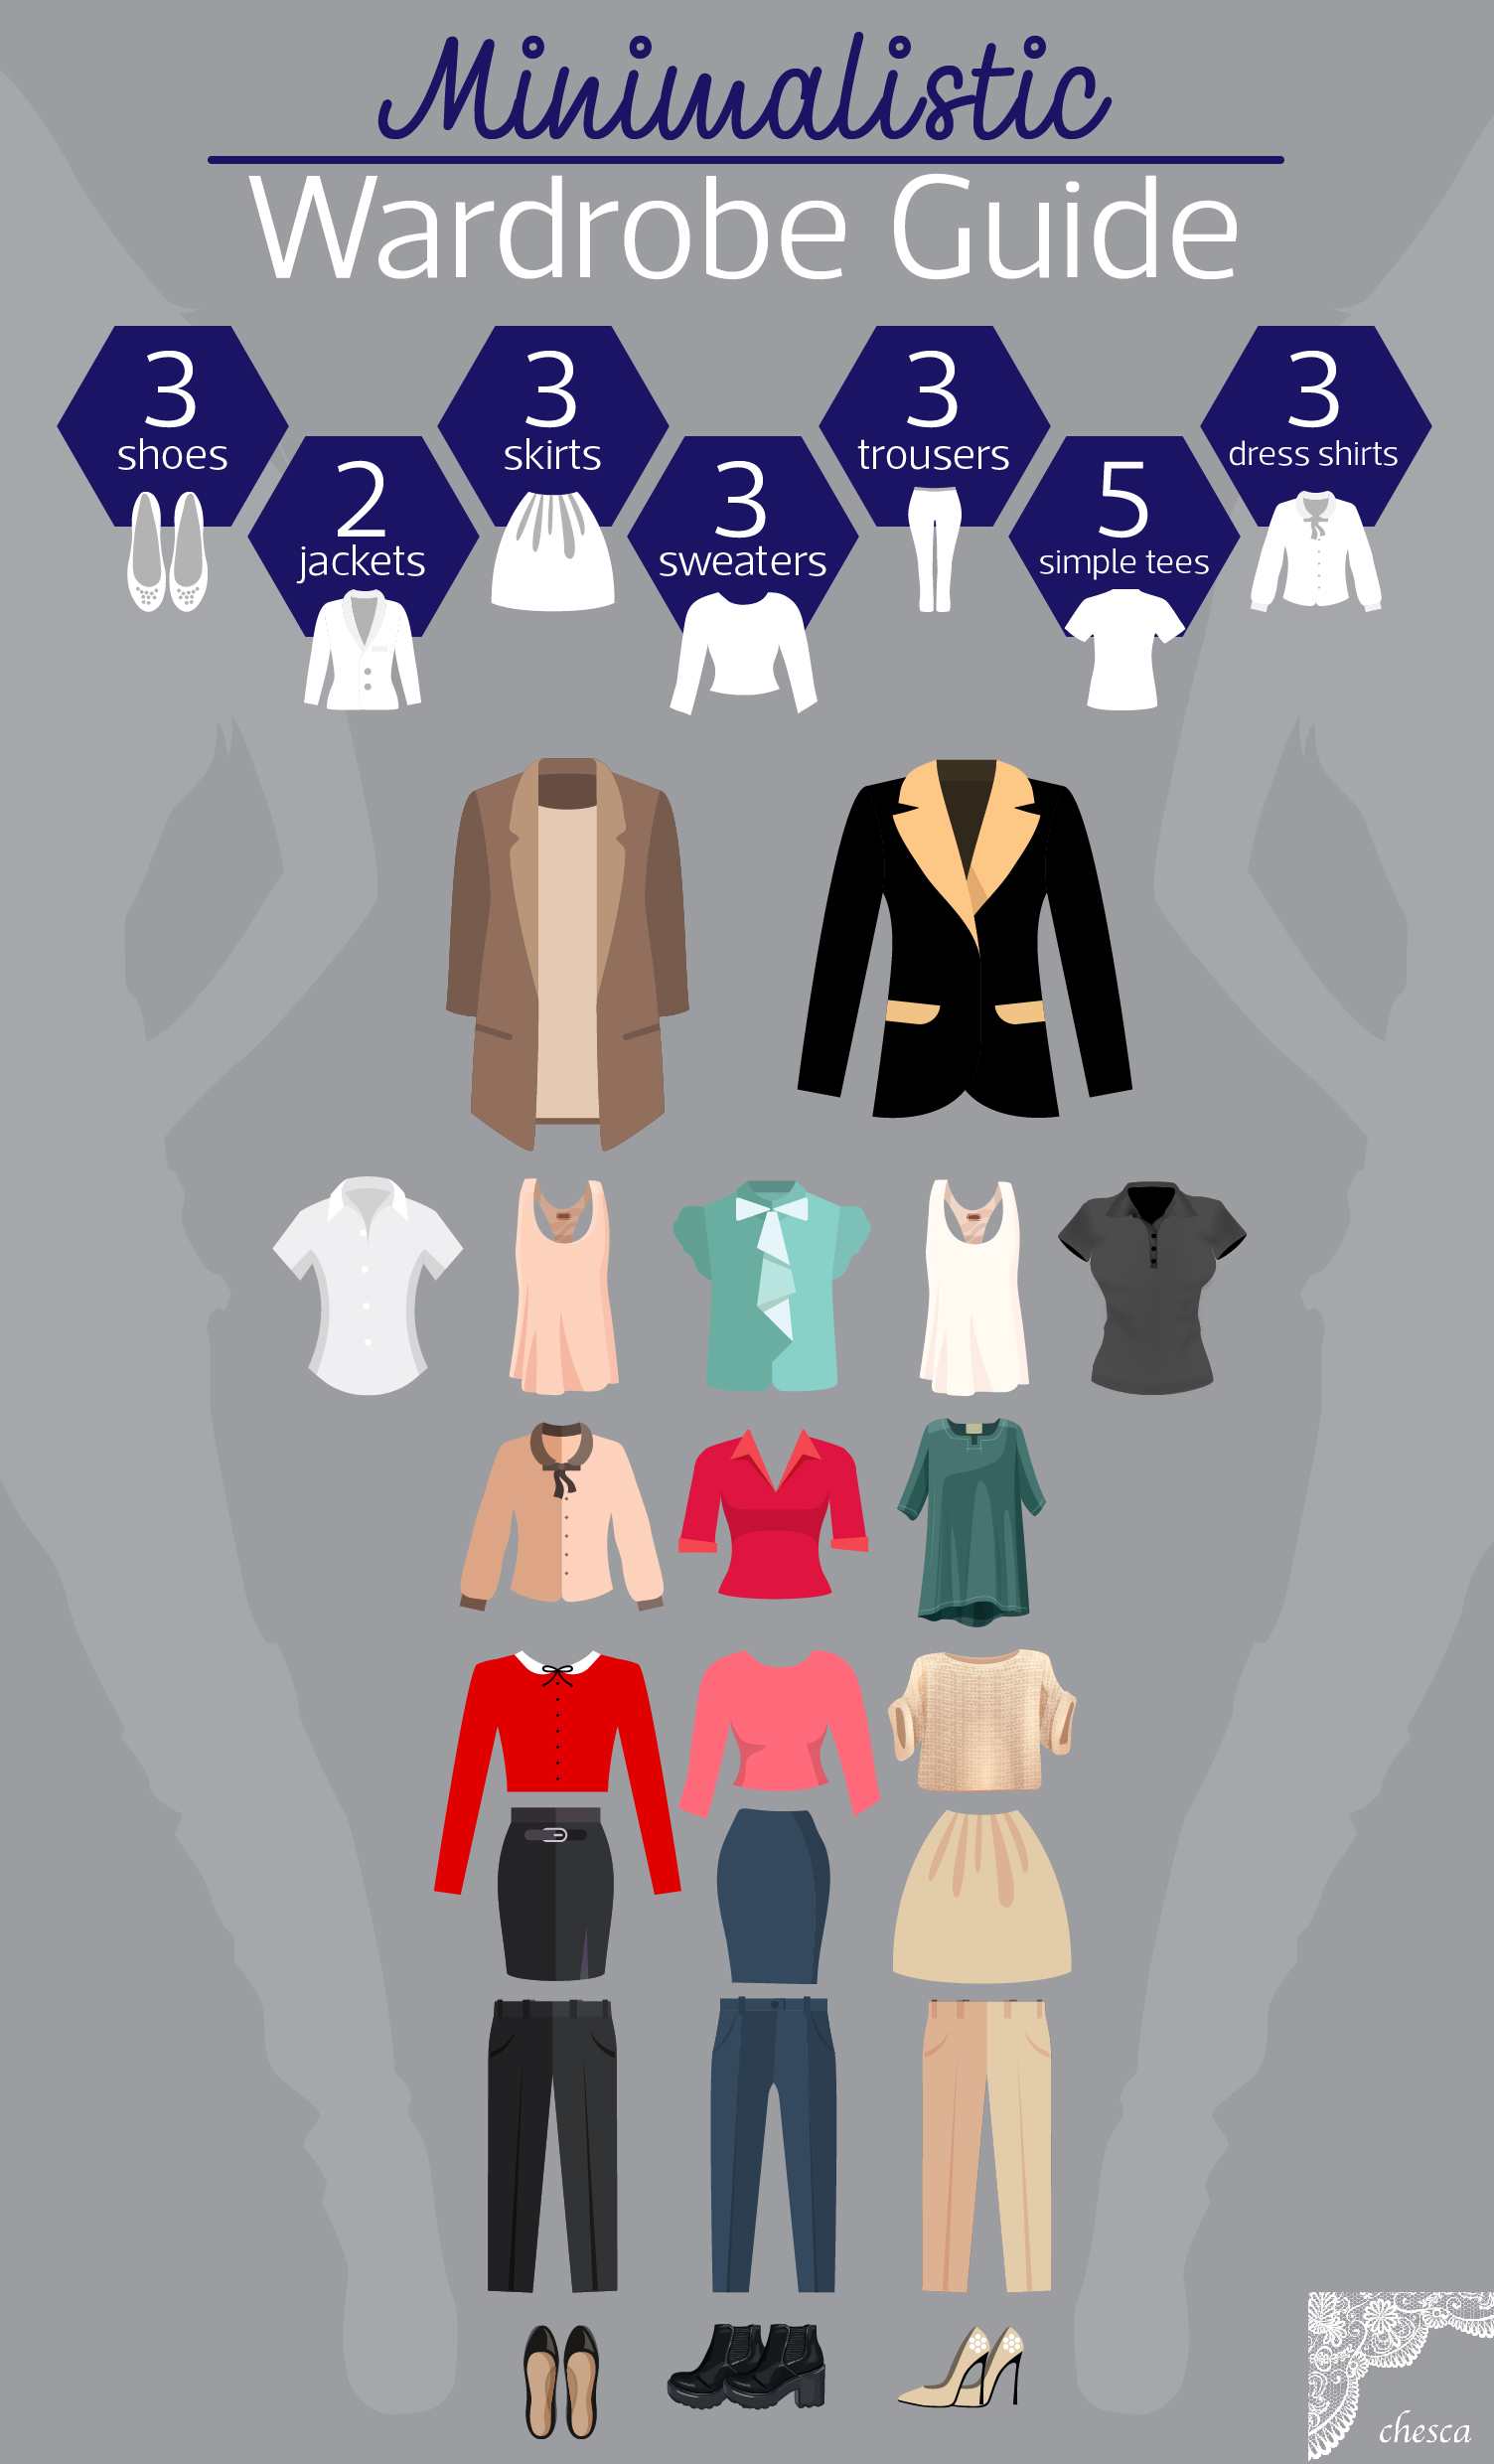 how to have a minimalistic wardrobe